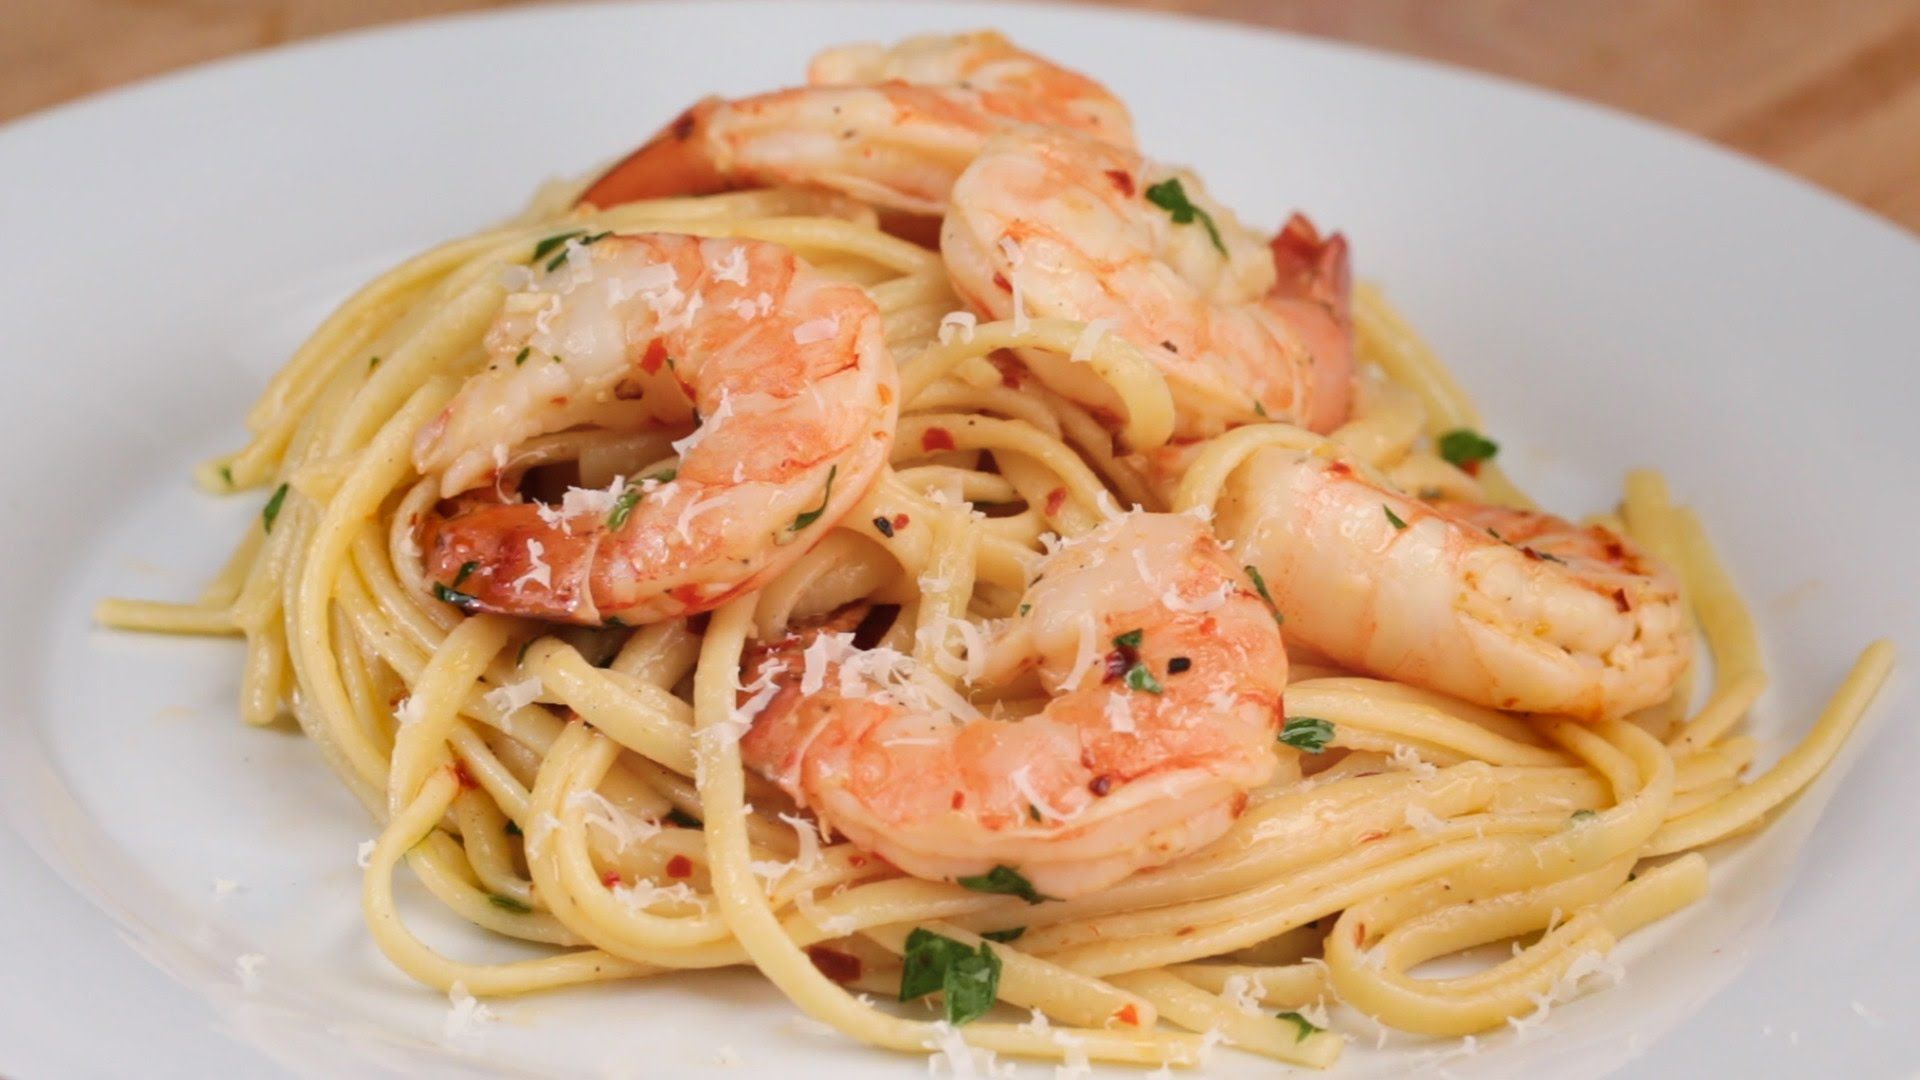 Here is what you'll need! BAKED SHRIMP SCAMPI LINGUINE Servings: 4 INGREDIENTS 1 pound (500 grams) shrimp peeled and deveined 1 tablespoon salt 1 tablespoon pepper 1 tablespoon red chili flakes 3 cloves garlic, minced 6 ounces (180 grams) butter, melted 1 tablespoon lemon juice ½ cup white wine 8 ounces (250 grams) linguine pasta …